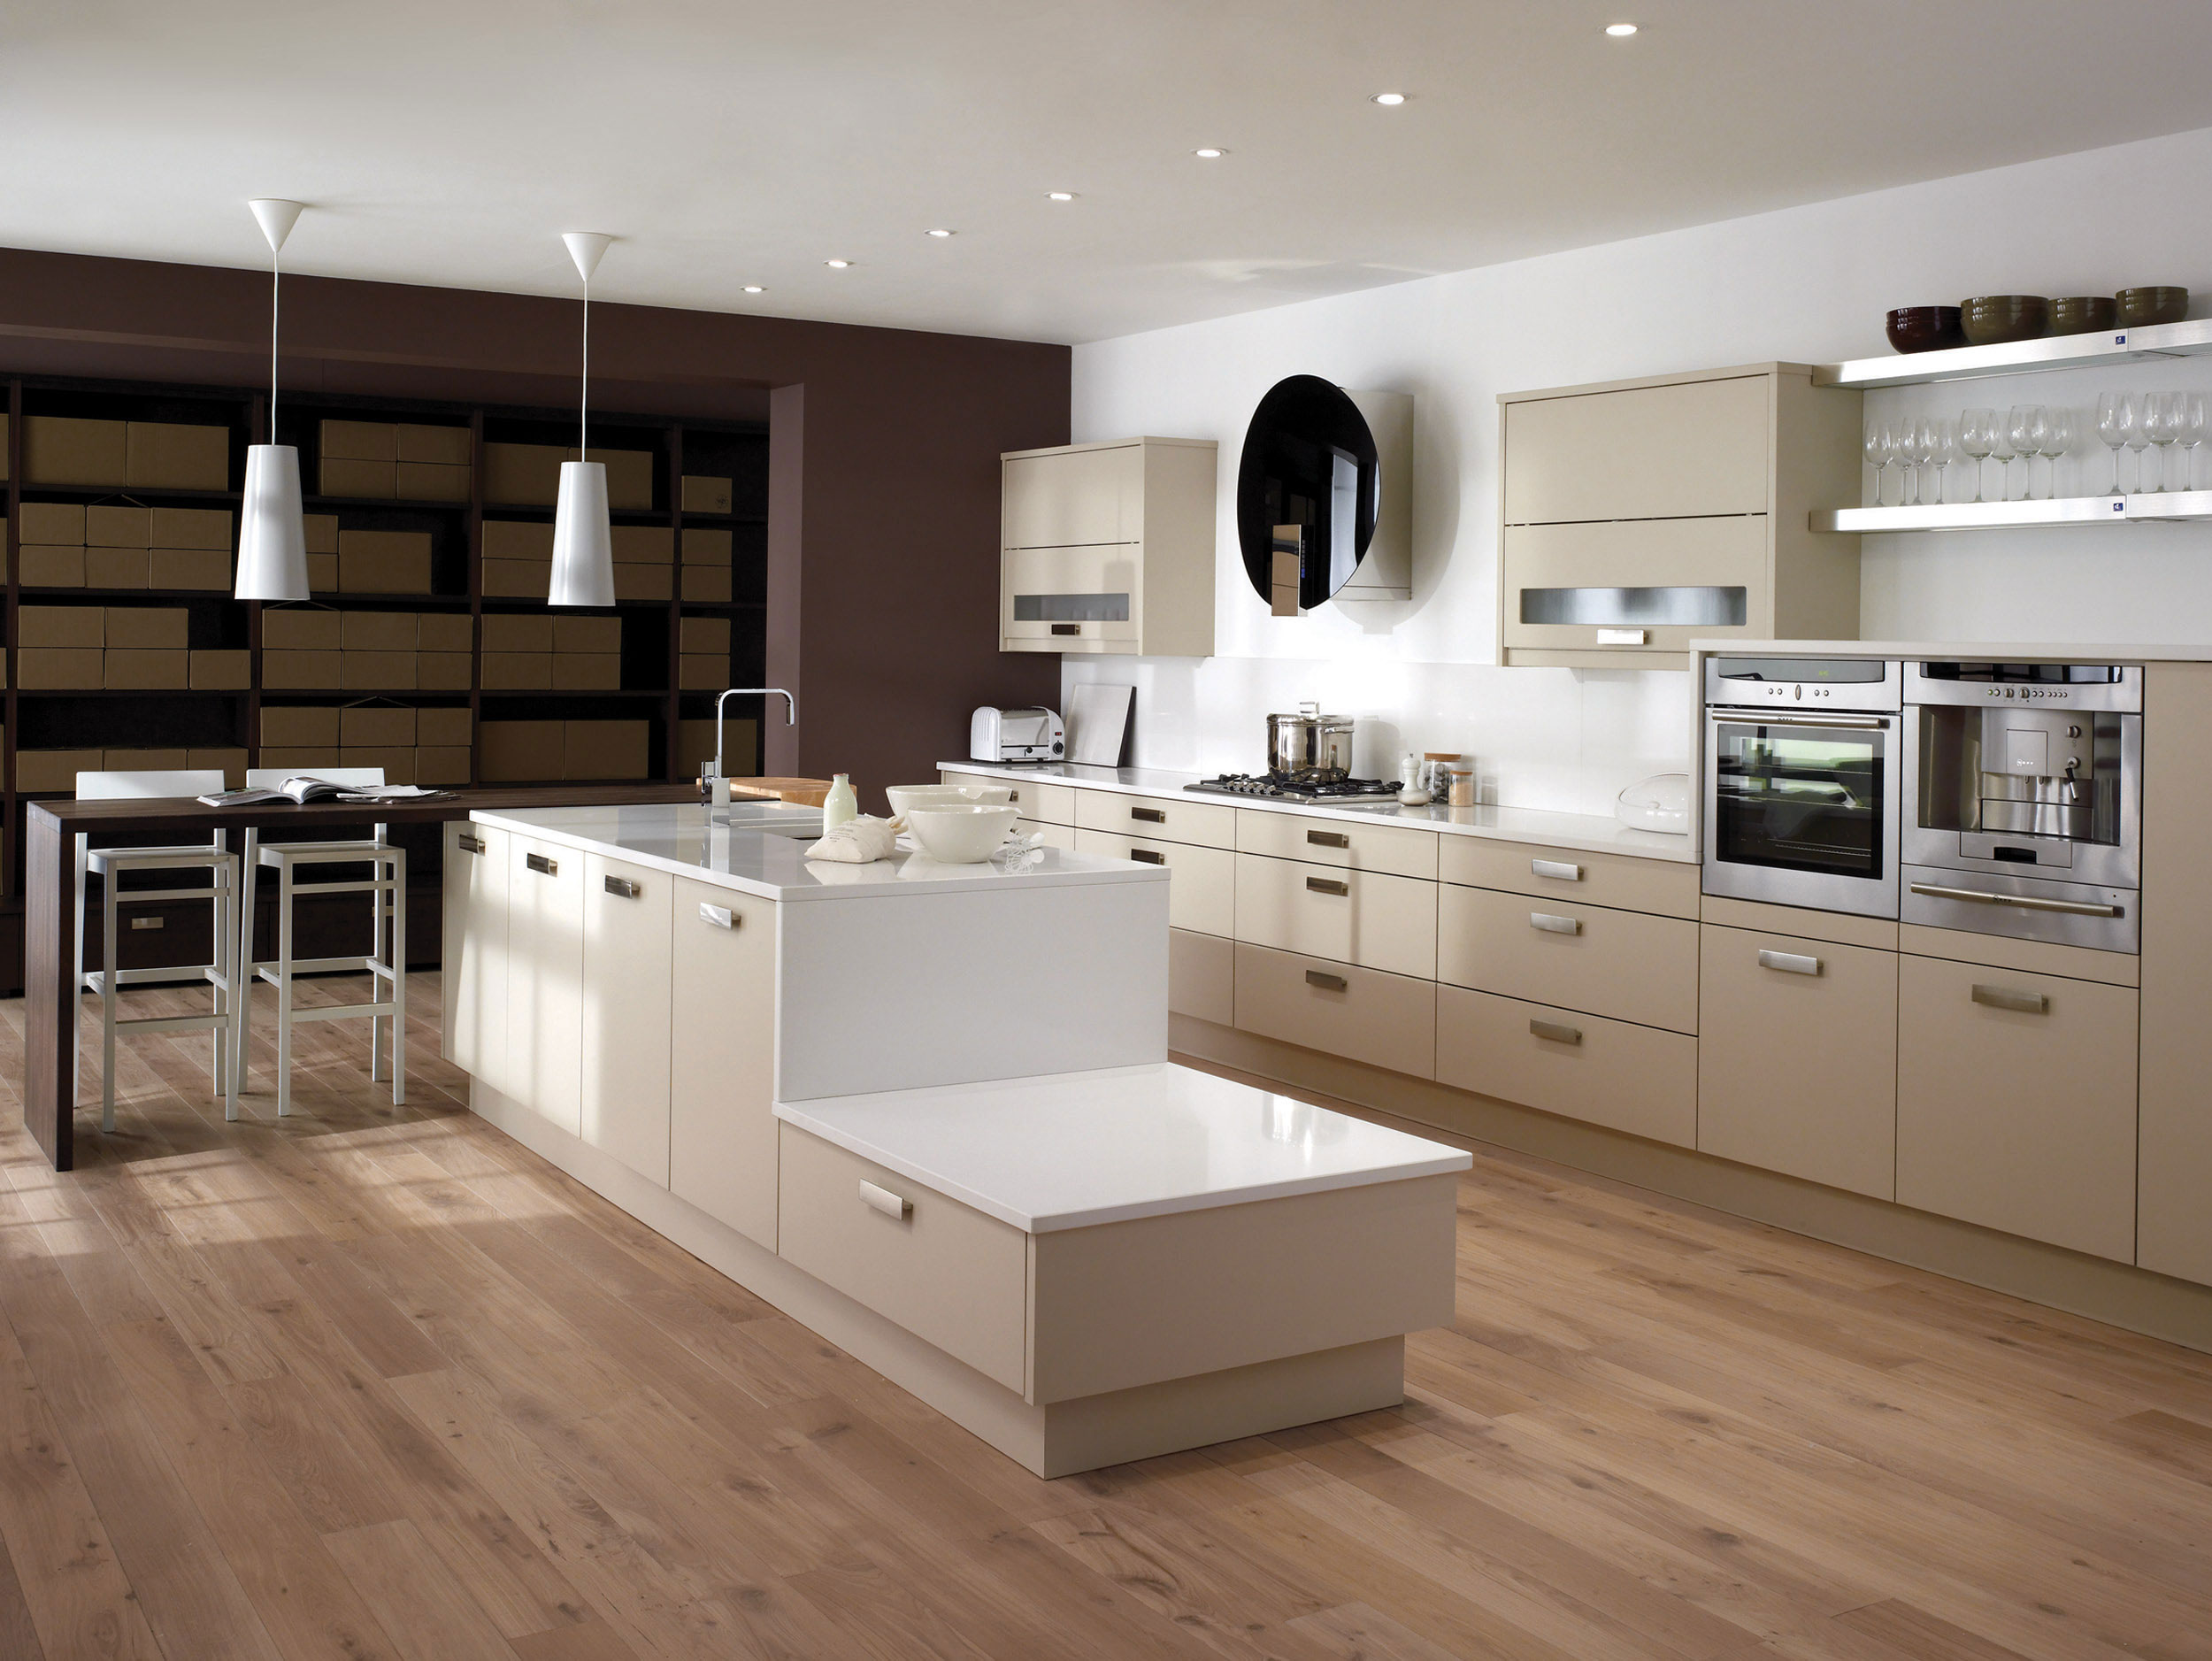 fresco beige from eaton kitchen designs wolverhampton. Black Bedroom Furniture Sets. Home Design Ideas